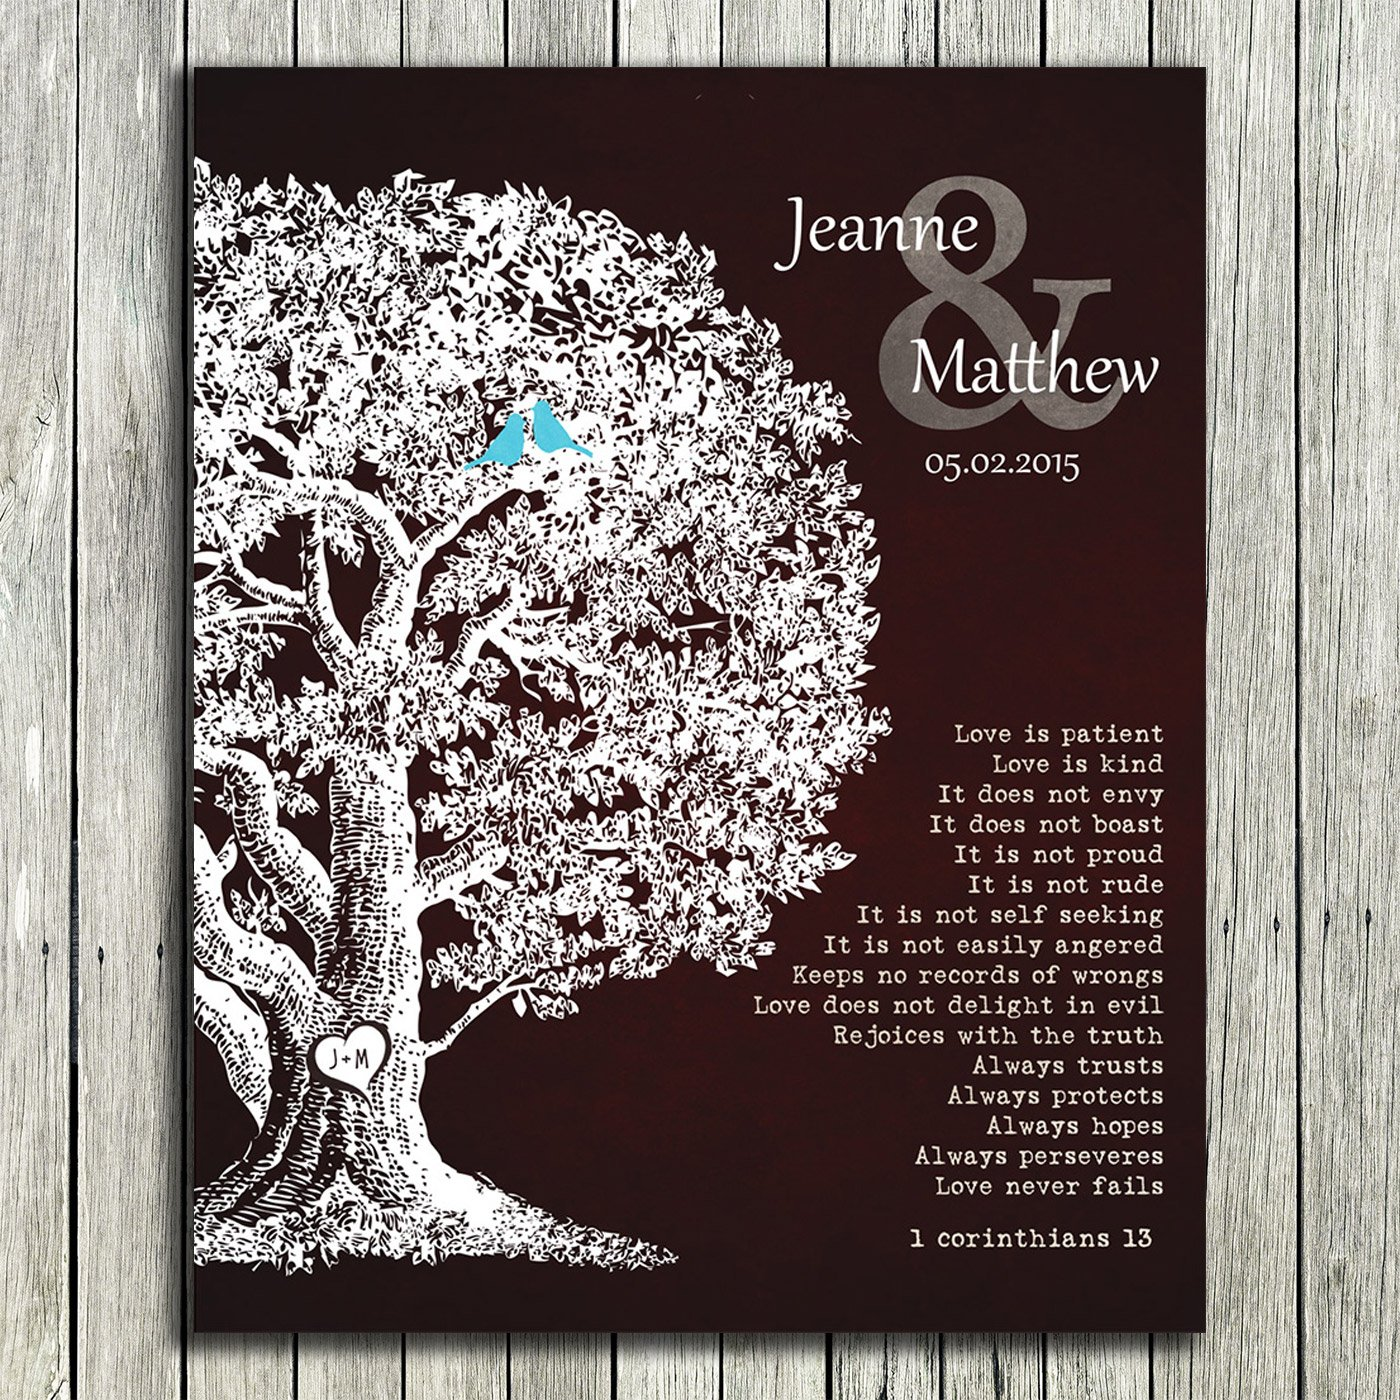 8x10 Unframed Print Personalized Gift Family Tree Anniversary Plaque 1 Corinthians 13 Carved Initials Love Is Patient Oak Tree Brown Background Custom Wedding Art